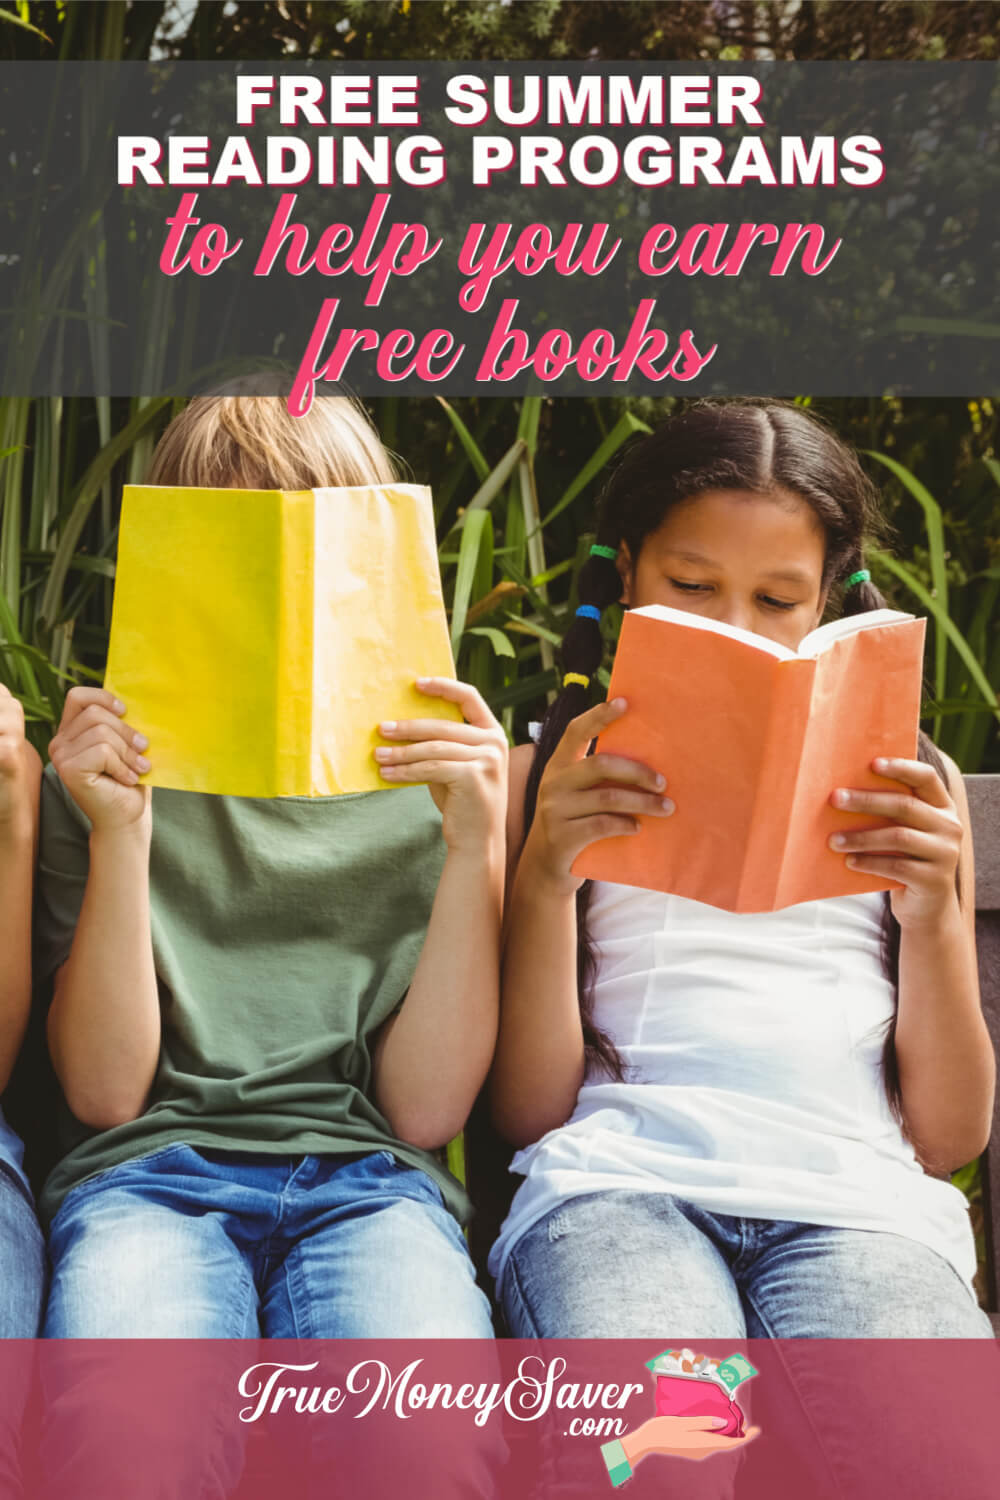 2019 FREE Summer Reading Programs for Kids! Keep Up Those Reading Gains by using these FREE summer reading programs to earn some FREEbies! 